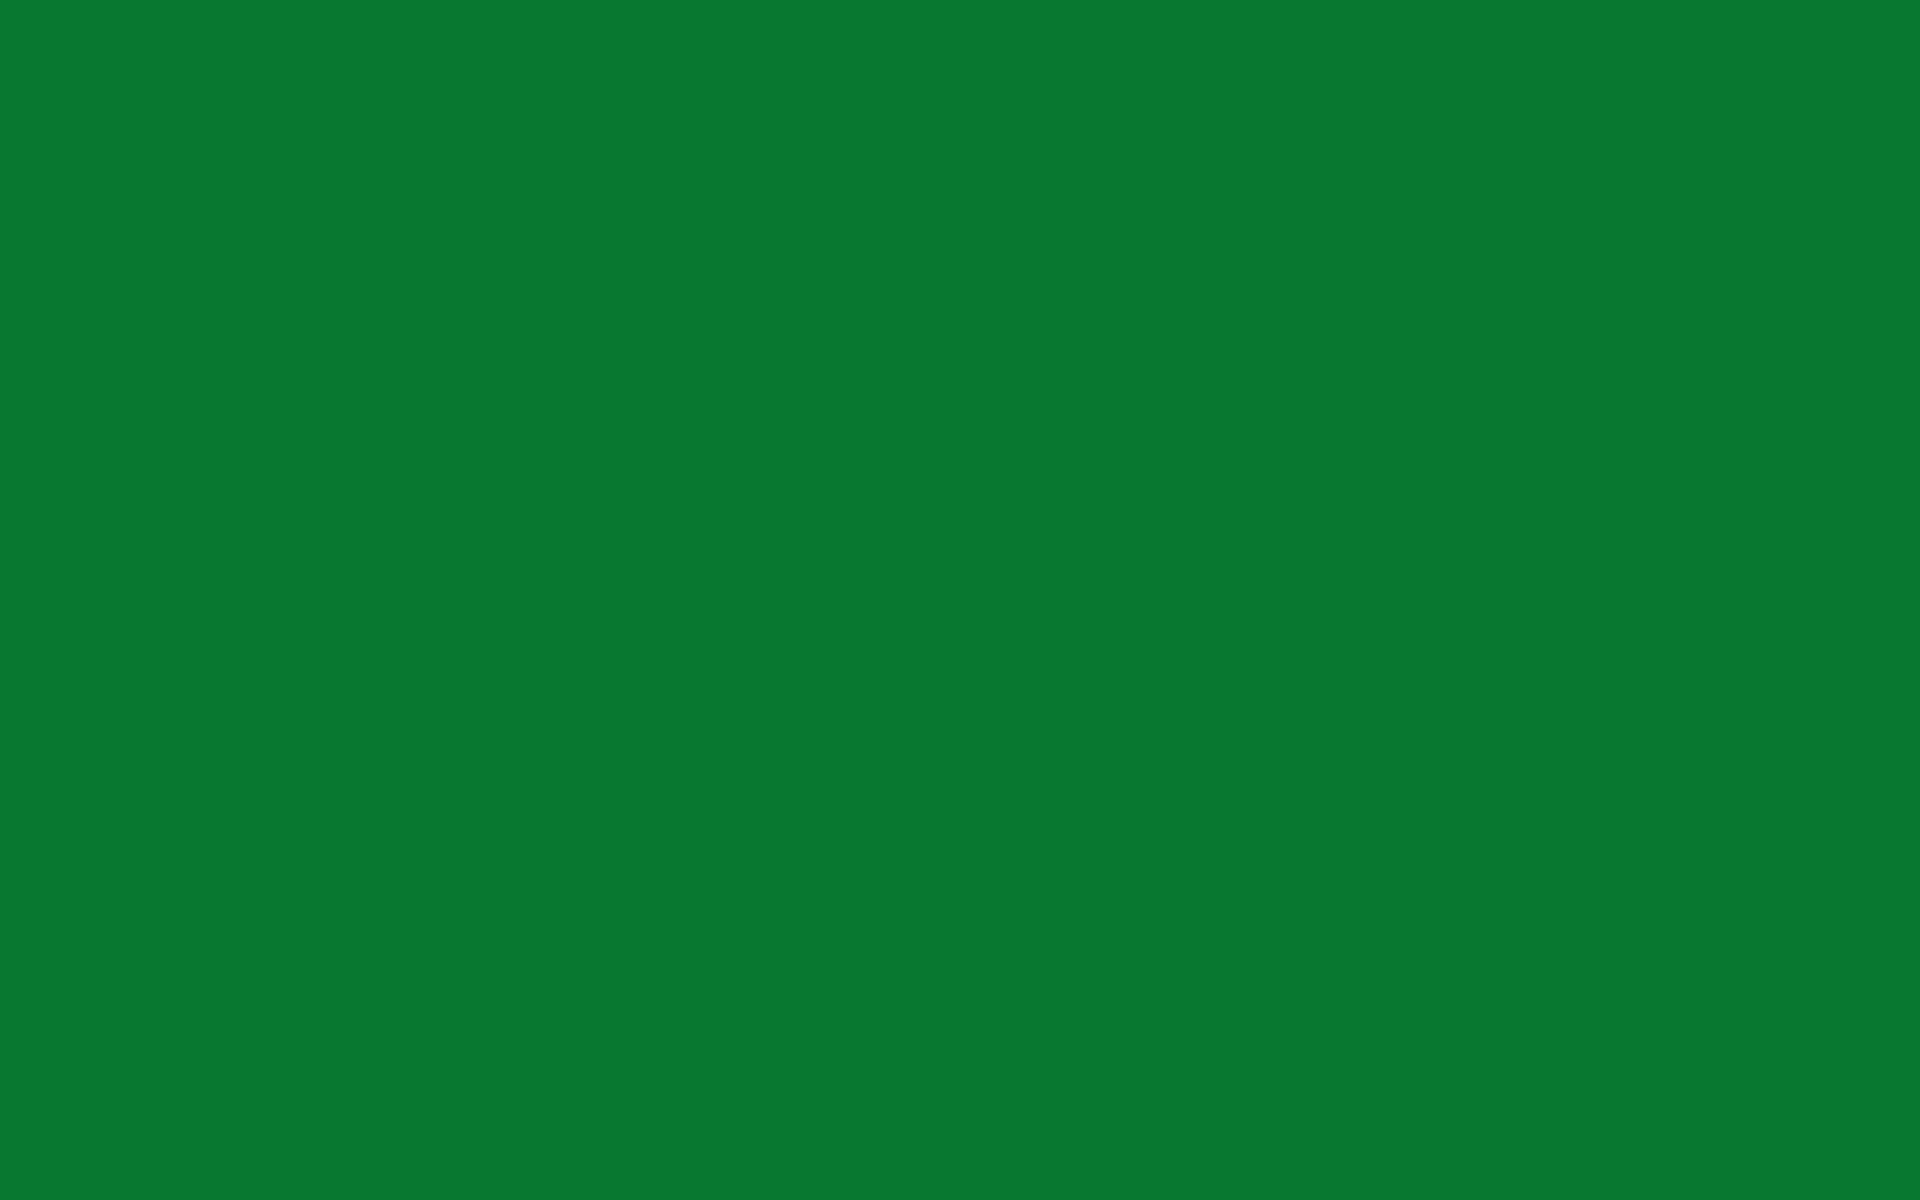 1920x1200 La Salle Green Solid Color Background